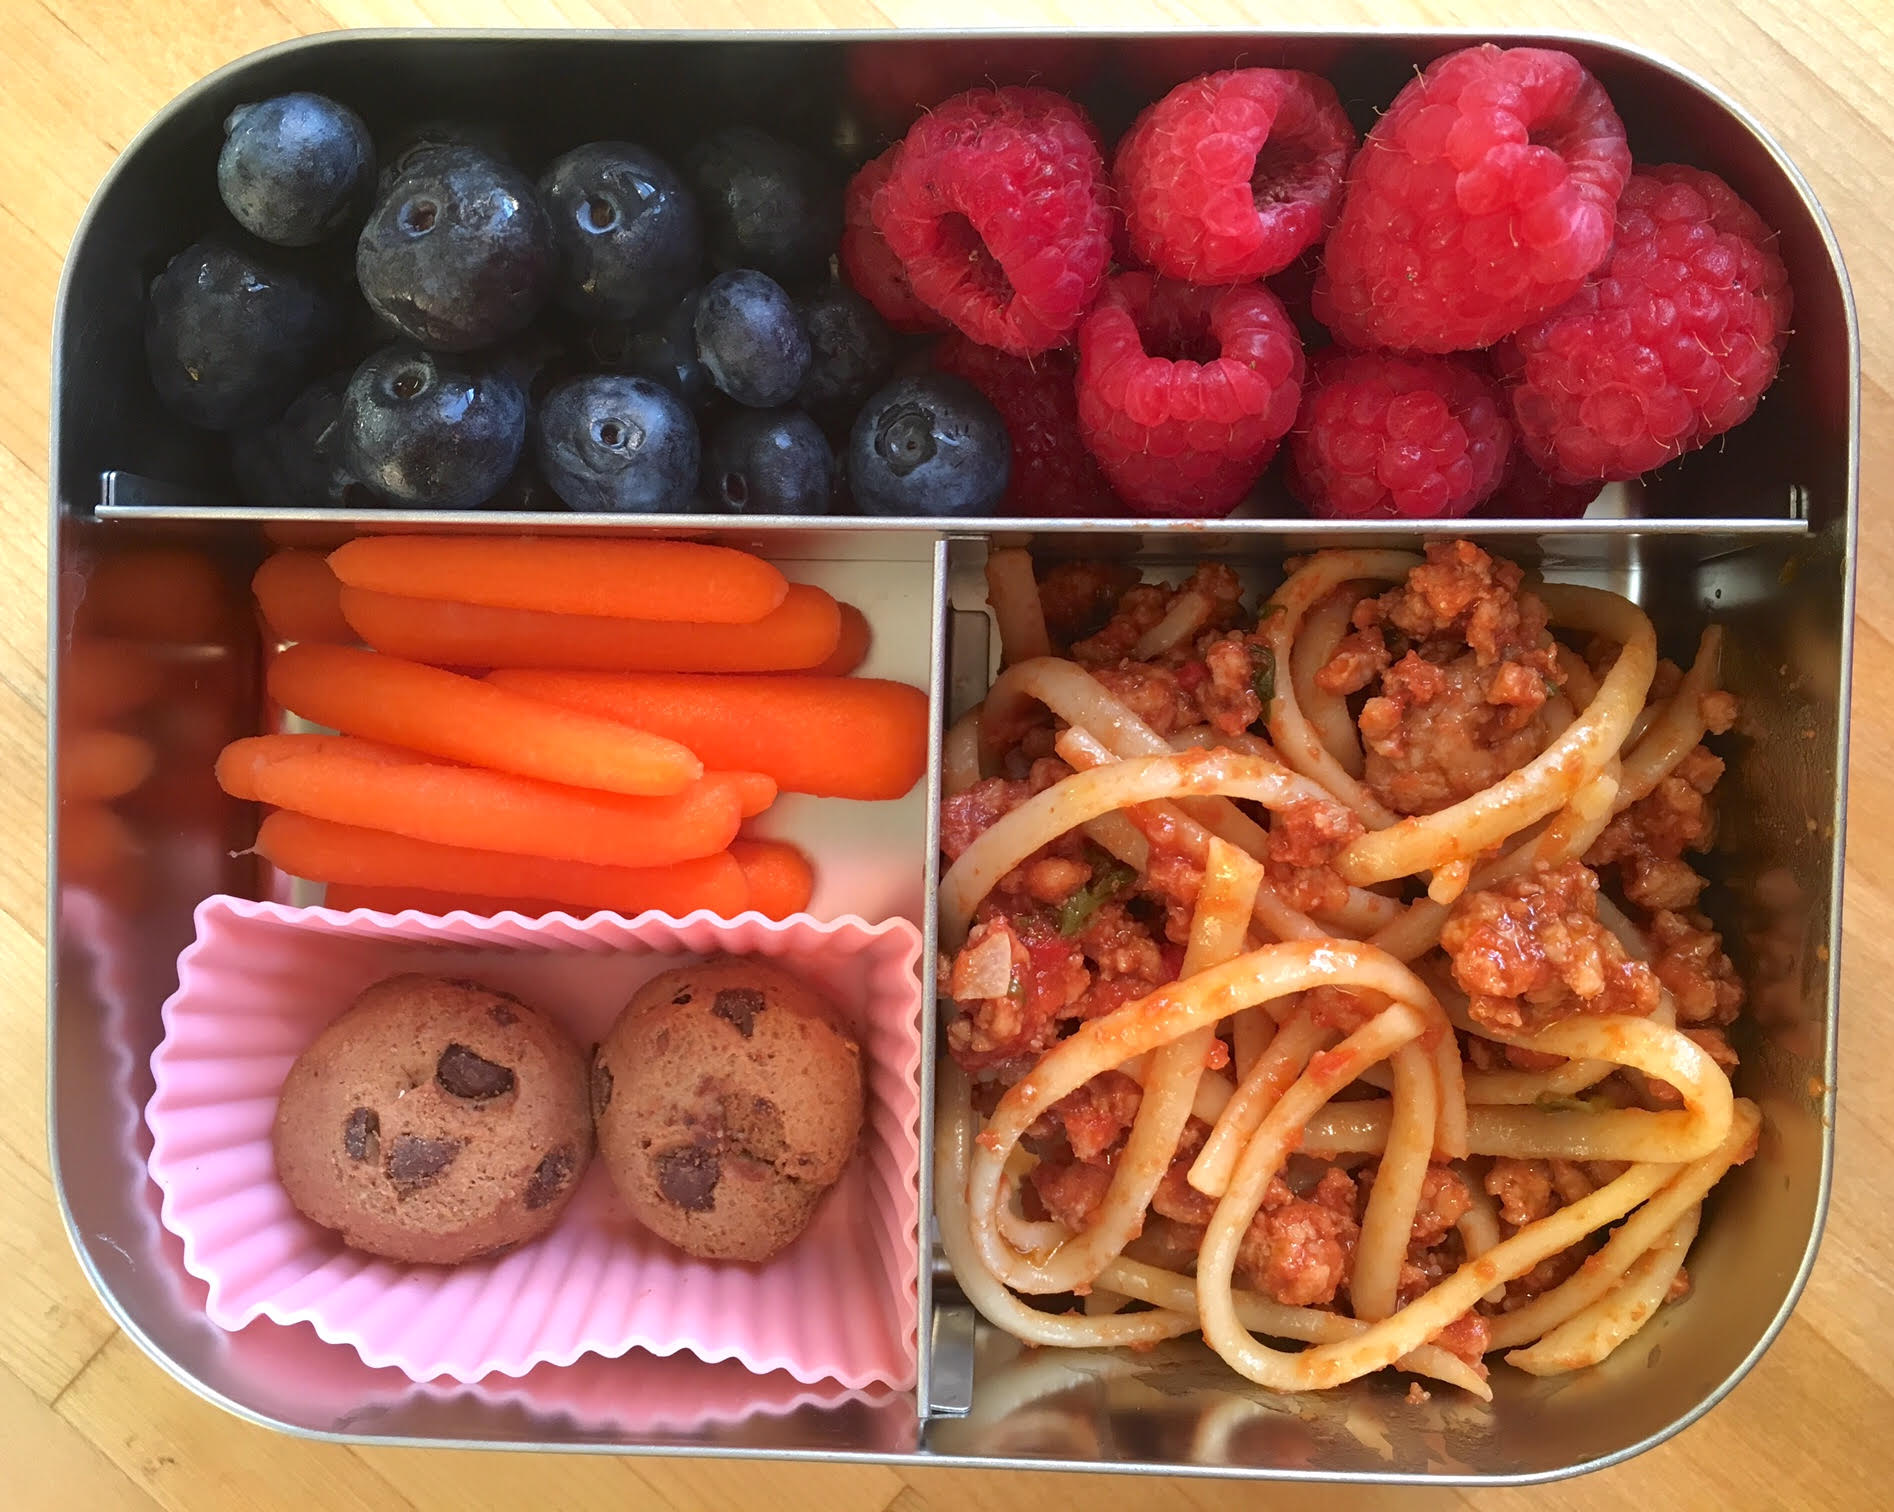 My kids love cold Bolognese with pasta in their lunchbox!